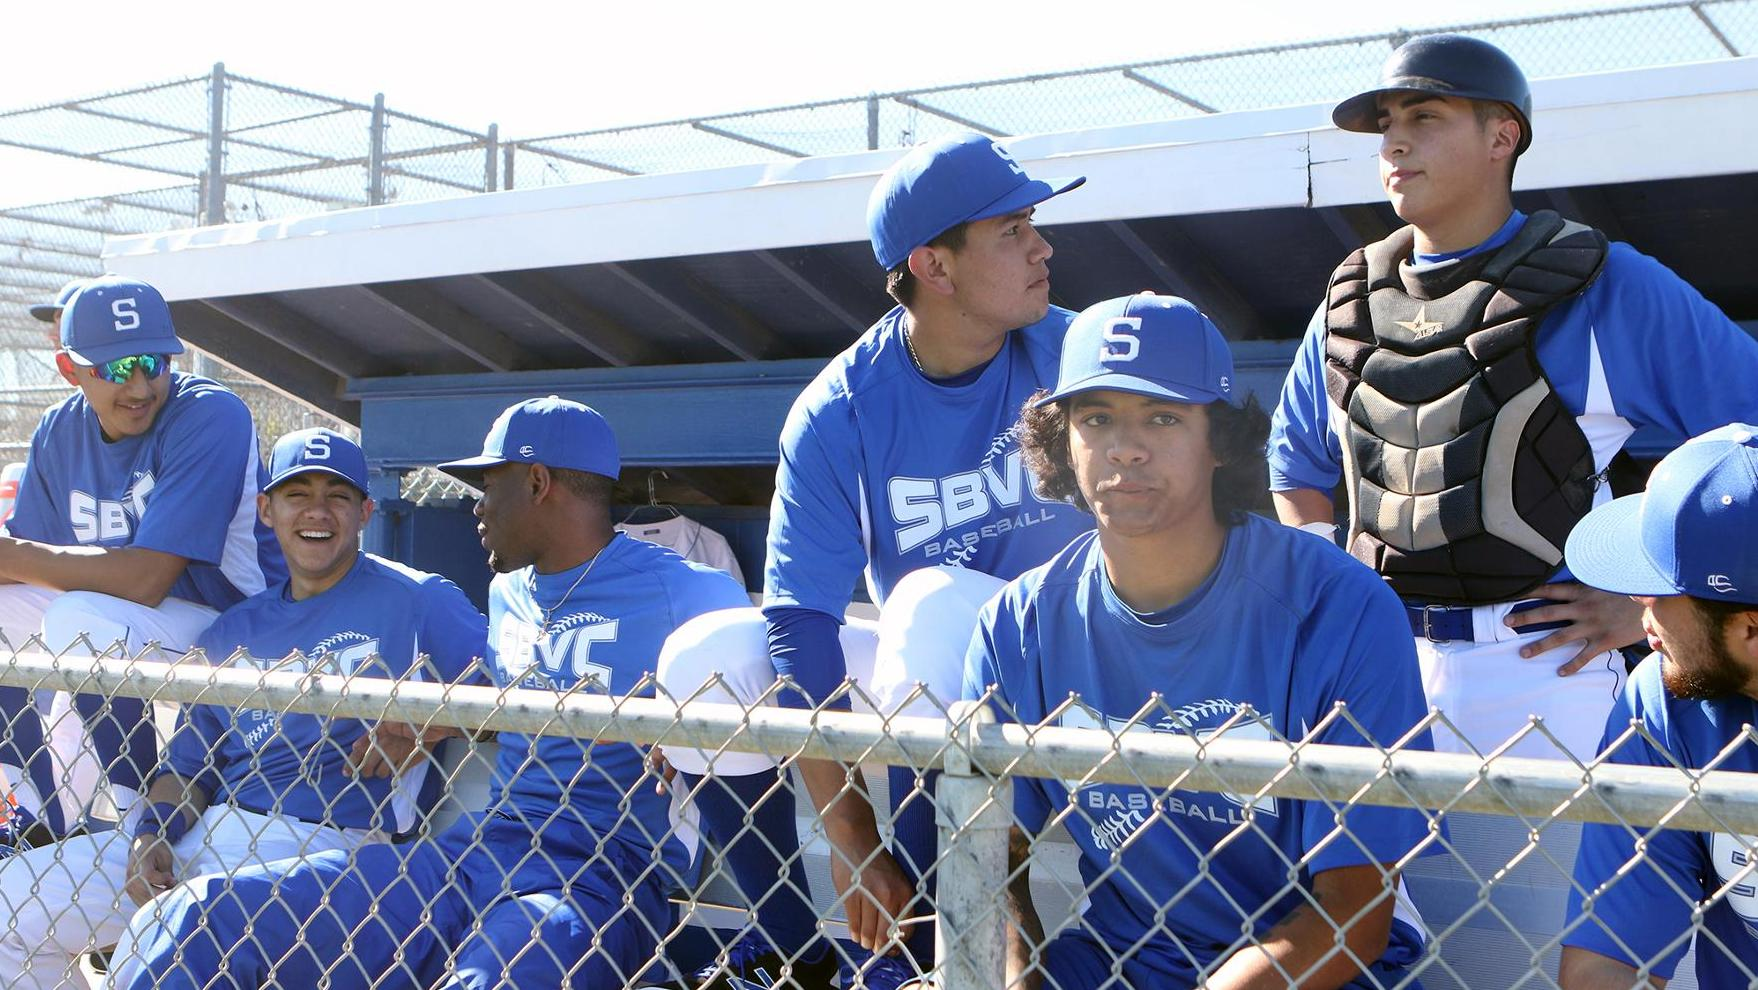 SBVC Baseball falls to the Warriors, 11-7